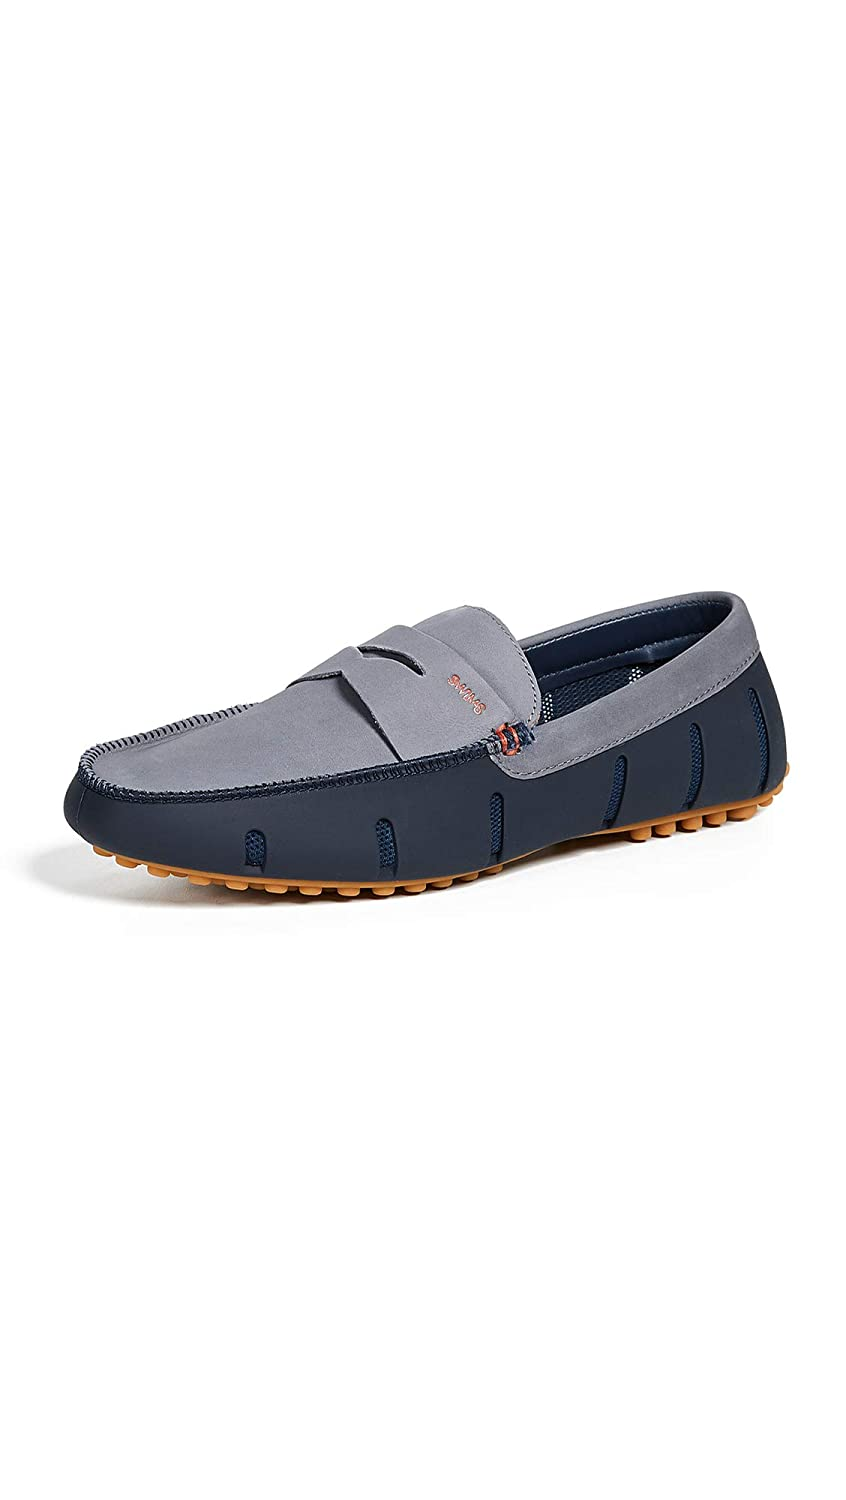 Navy Grey Gum Swims Men's Penny Luxe Loafer Drivers